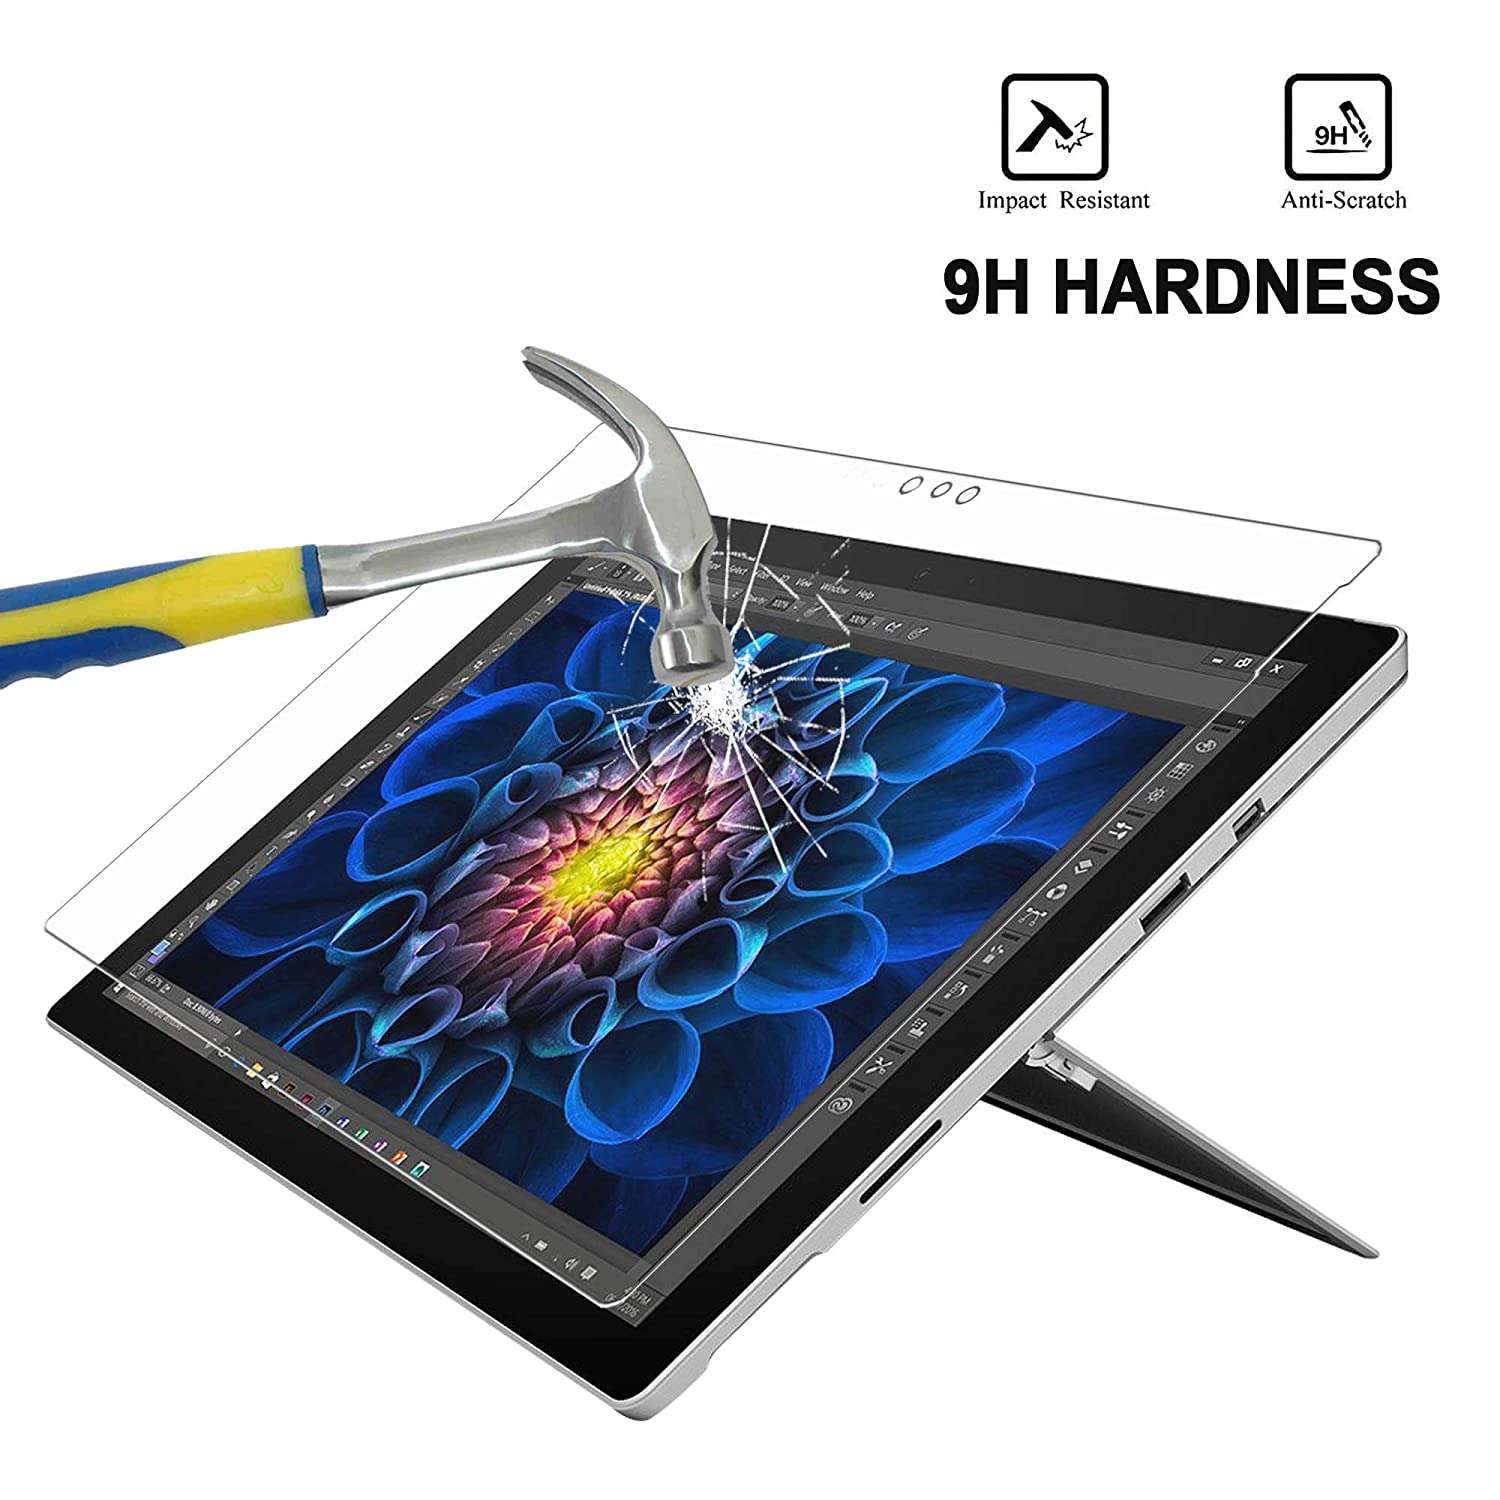 Protect Eyesight Tempered Glass Screen Protector for Microsoft Surface Pro 3-12 Inch MEGOO Surface Pro 3 Screen Protector, Blue Light Blocking